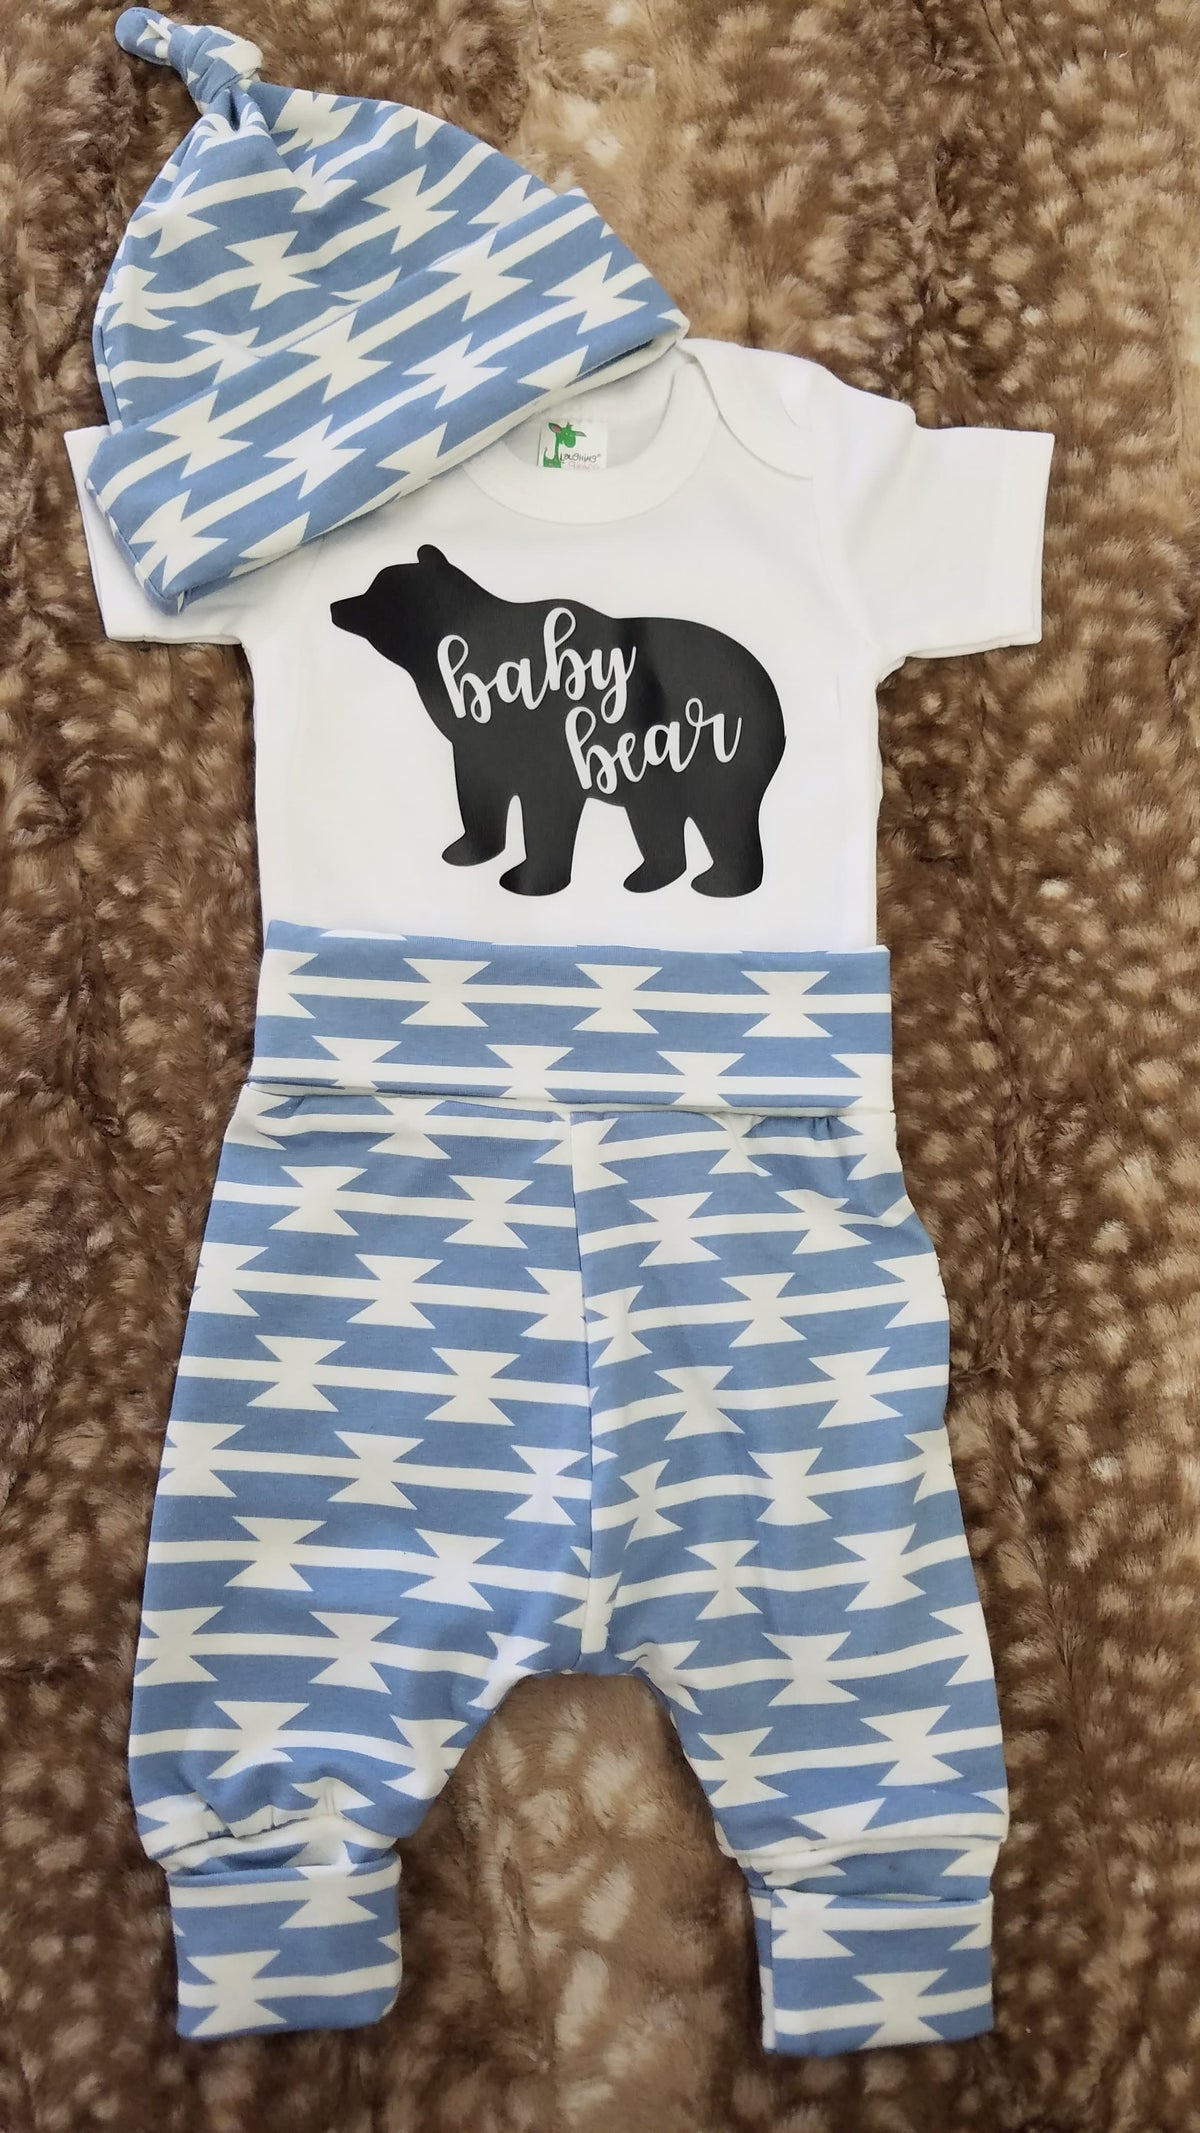 Baby Outfit - Baby Bear and Light blue tomahawk